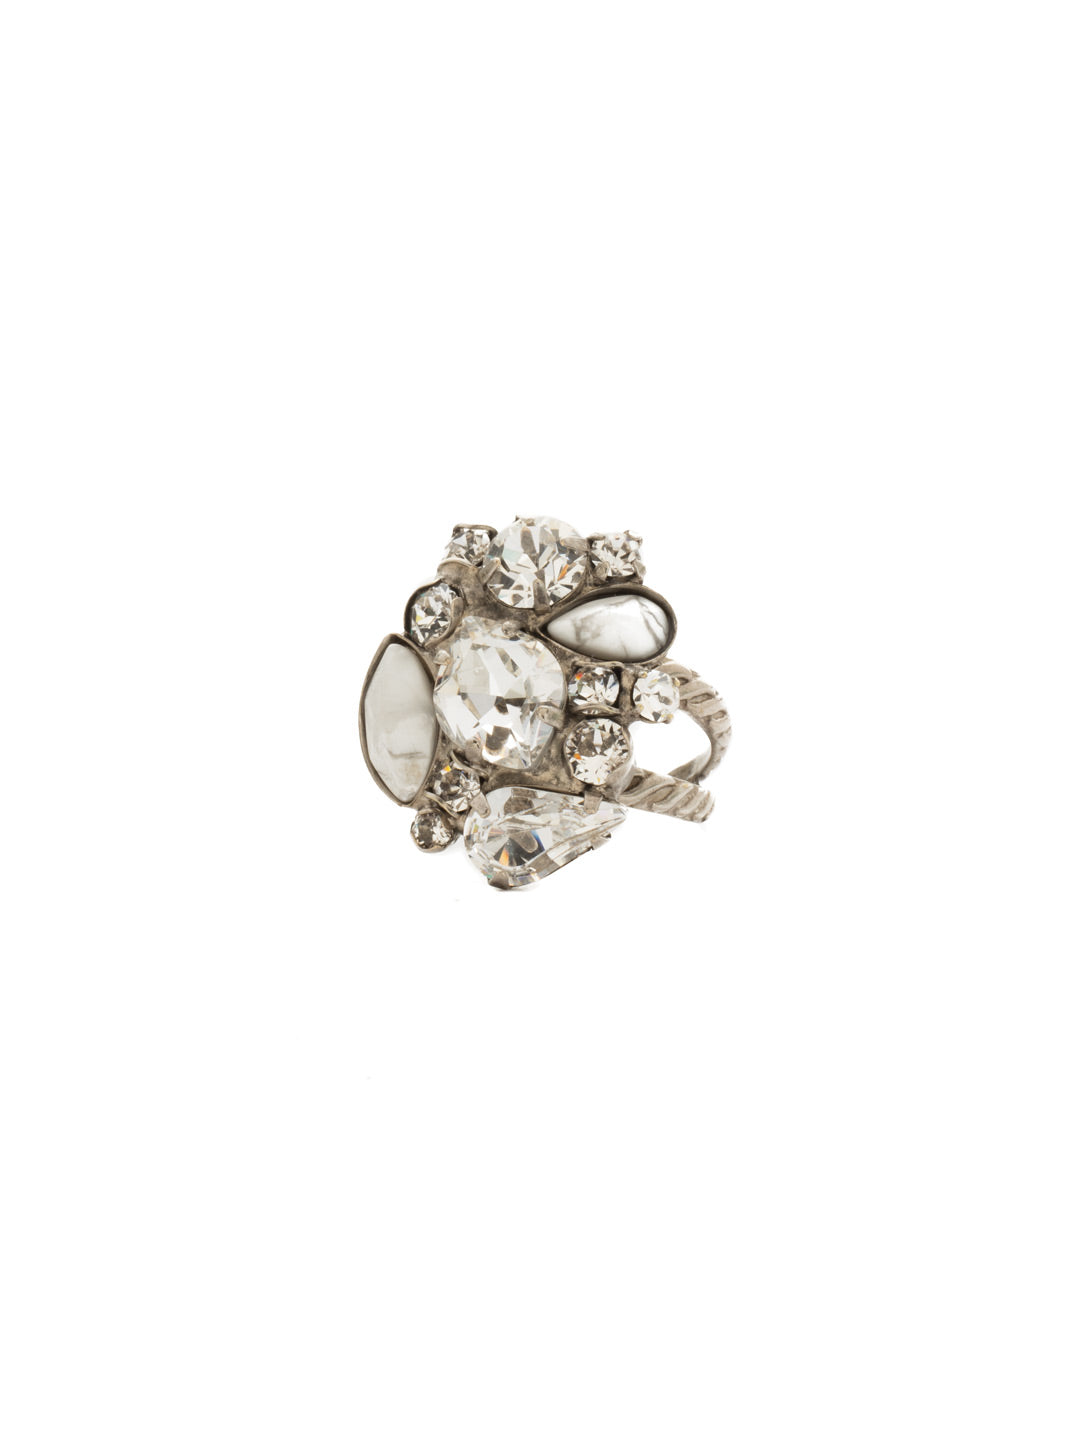 Contemporary Cluster Ring - RDK15ASCRY